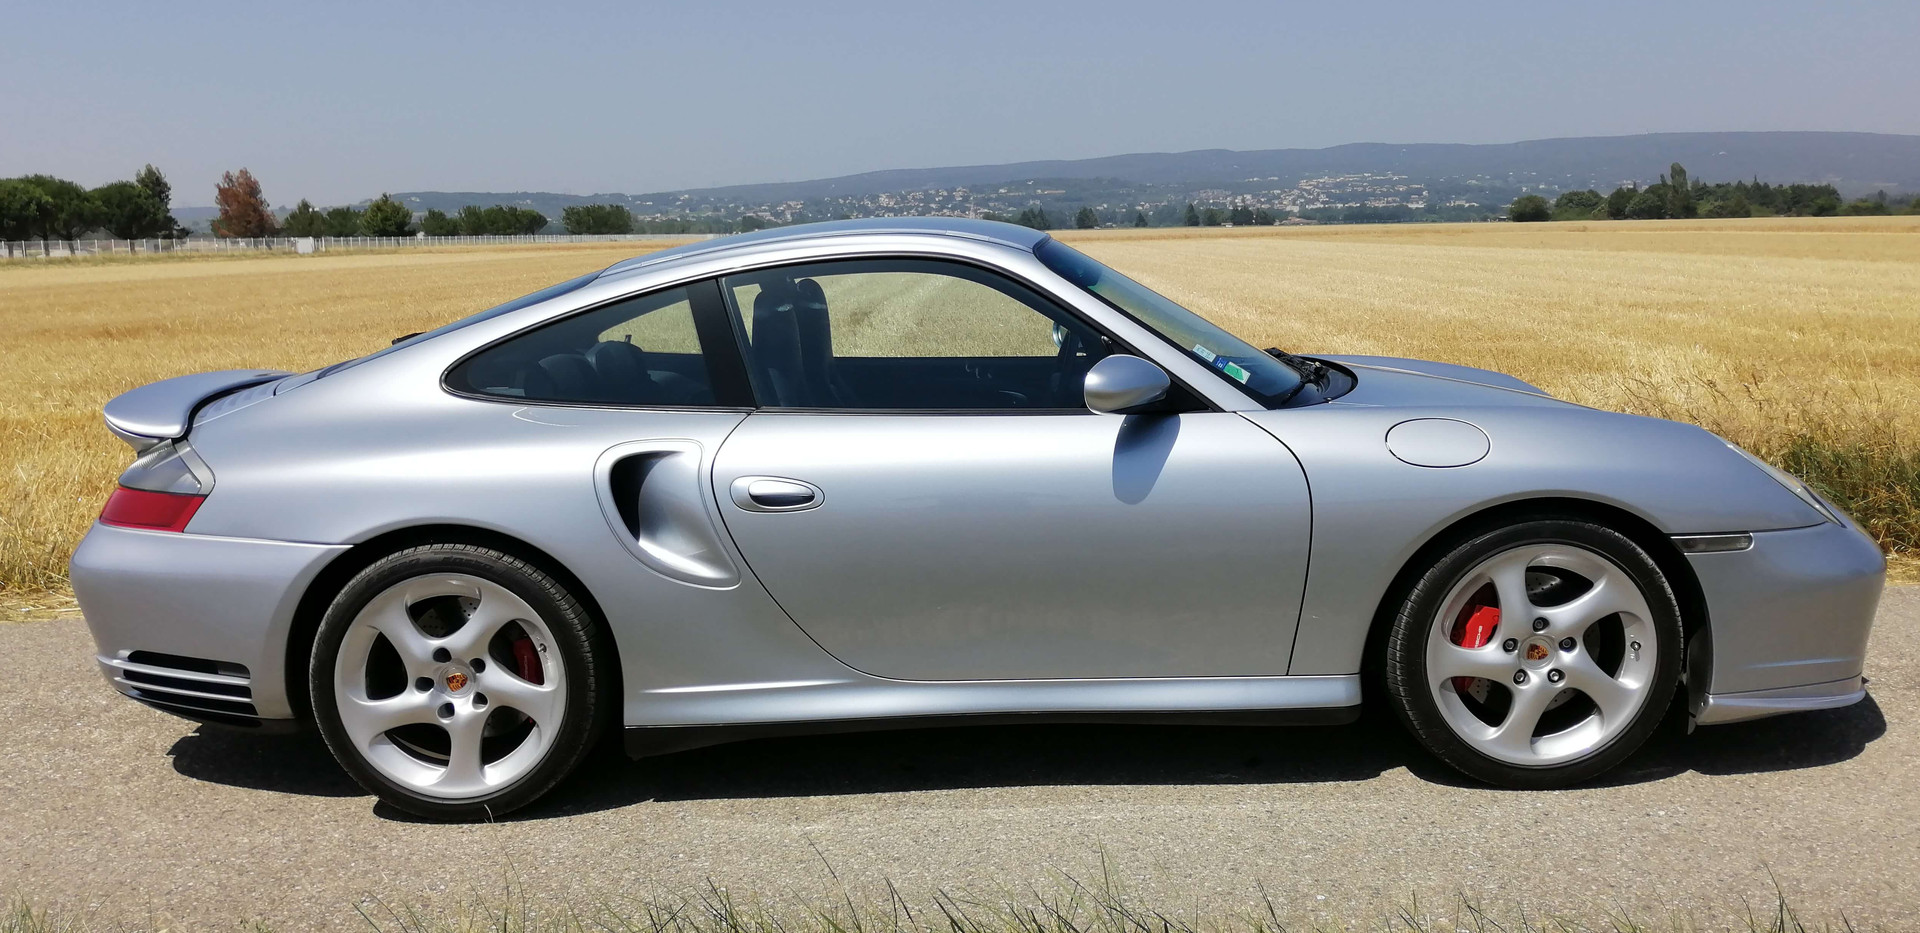 PORSCHE 911 type 996 turbo